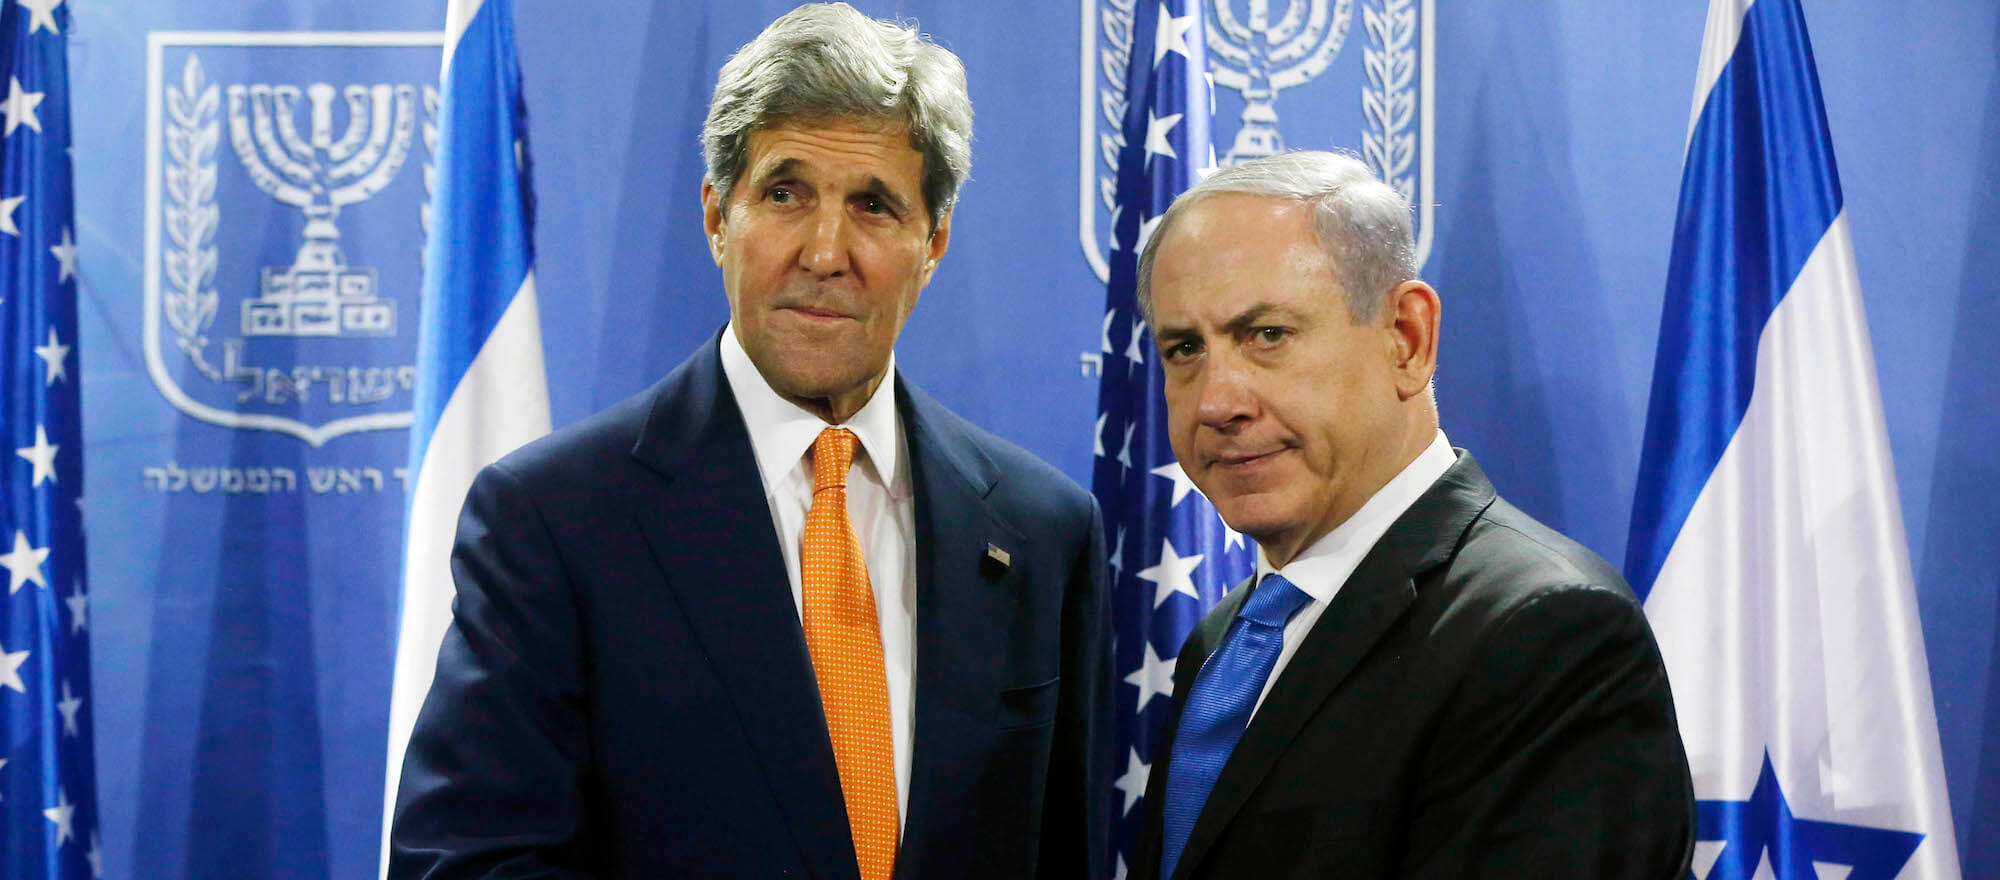 U.S. Secretary of State John Kerry (L) meets with Israeli Prime Minister Benjamin Netanyahu in Tel Aviv July 23, 2014. (Photo: Reuters)